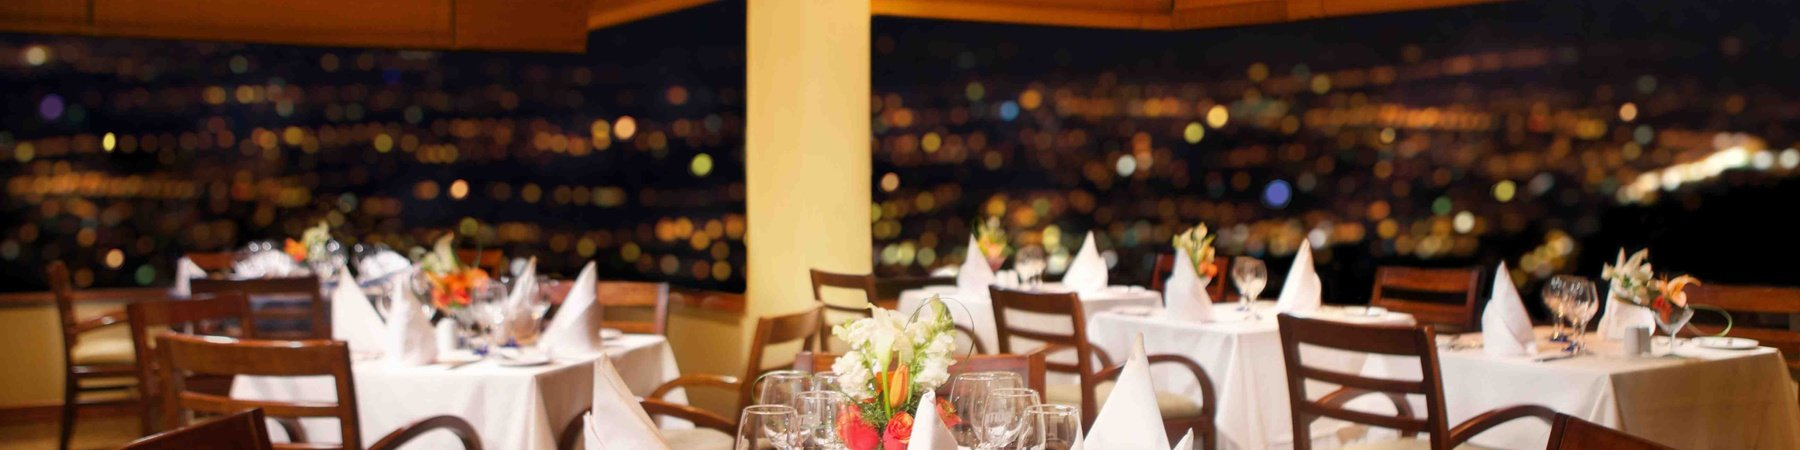 Restaurants - Hotel Quito By Sercotel